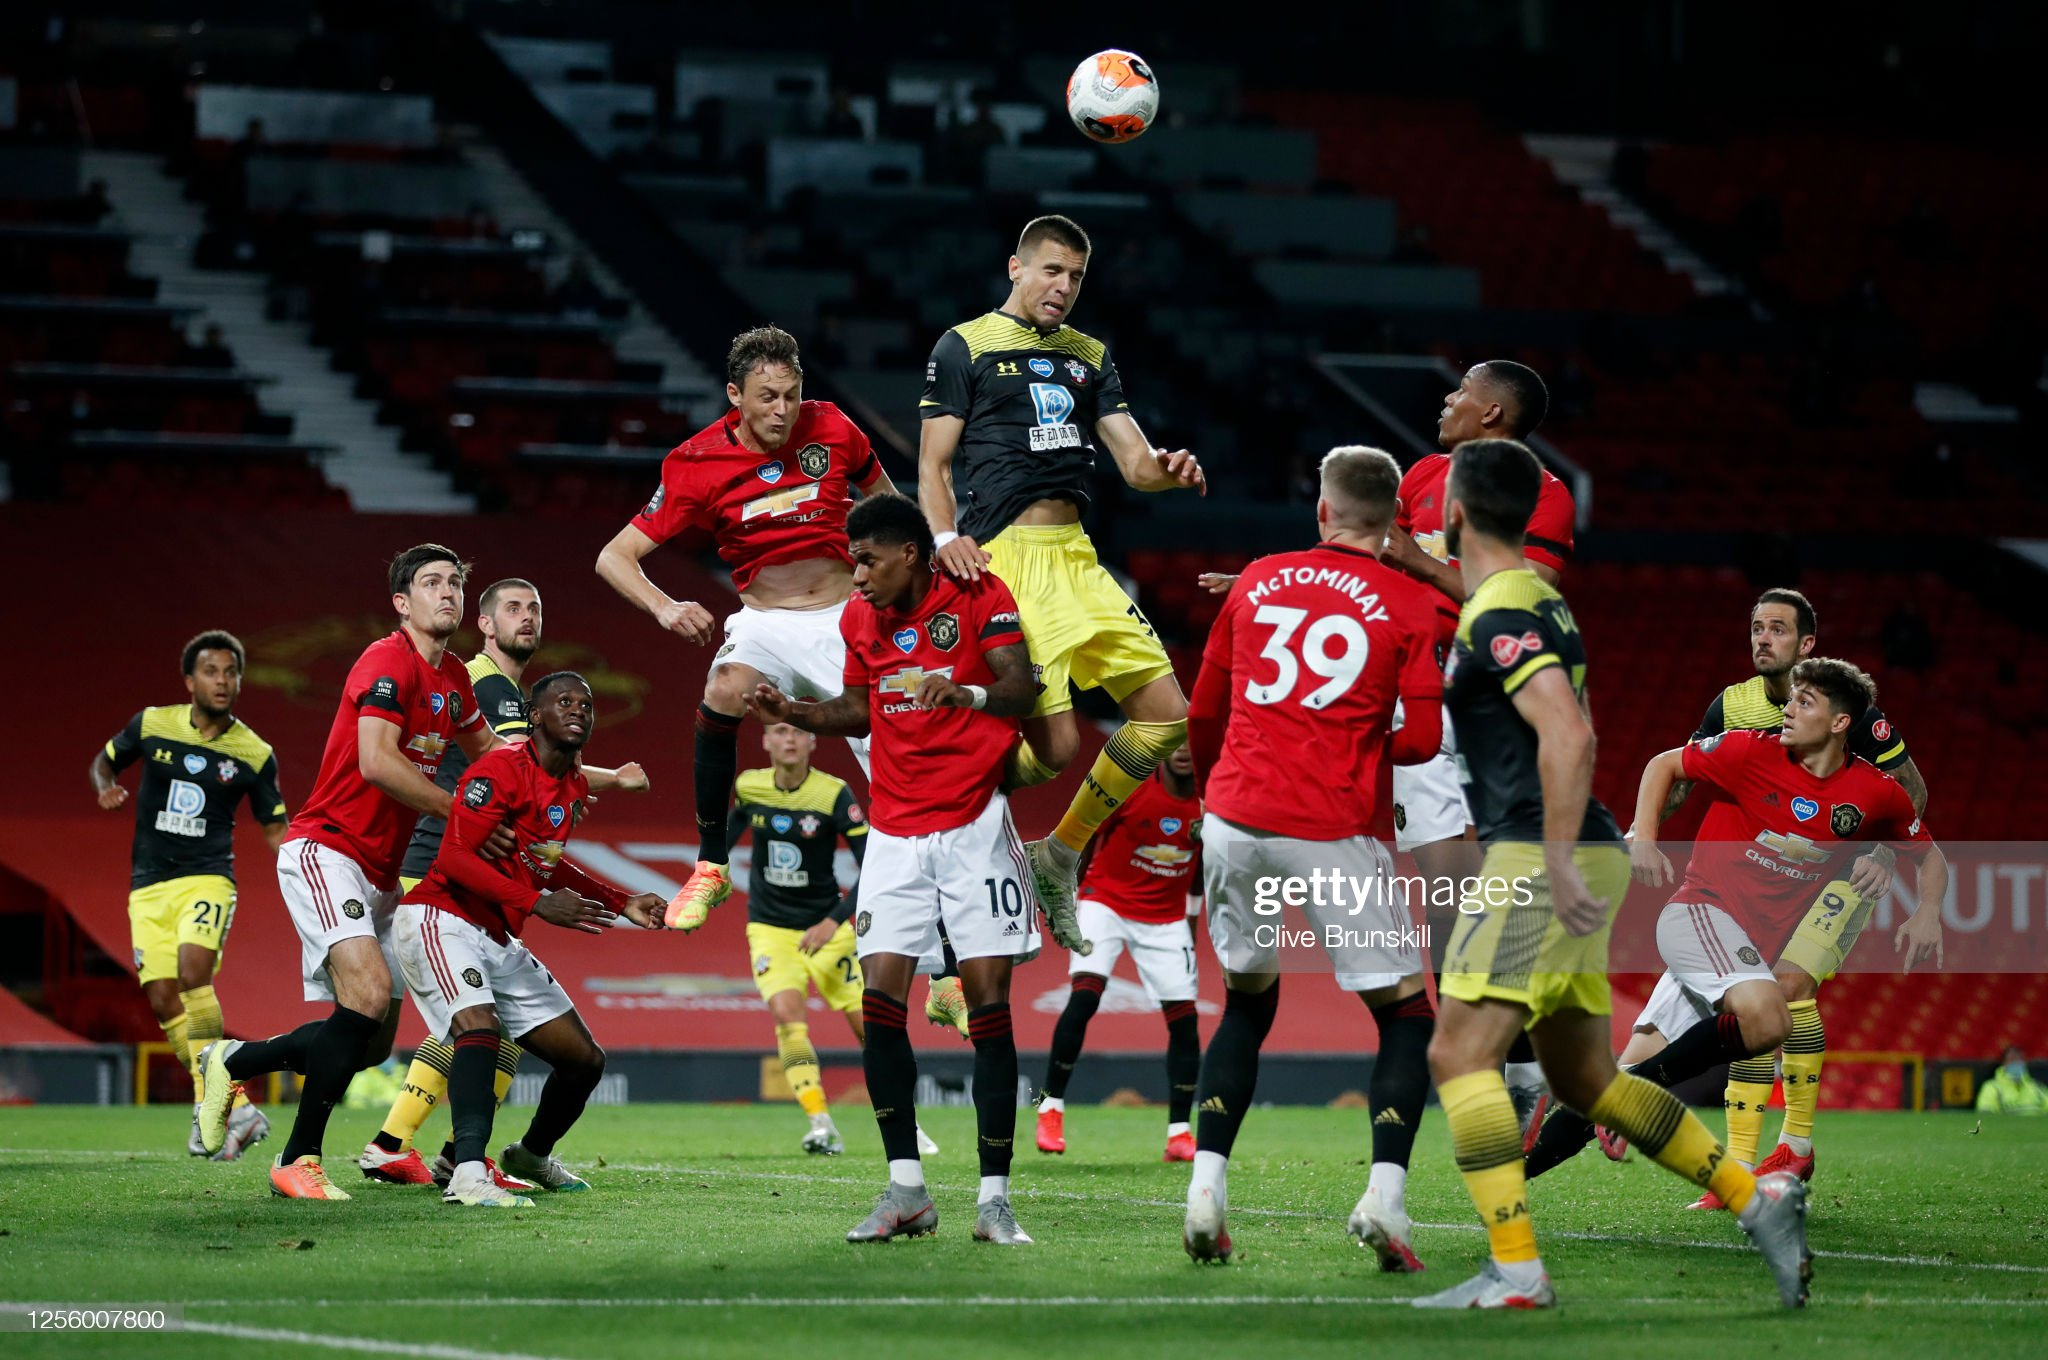 Southampton vs Manchester United Preview, prediction and odds